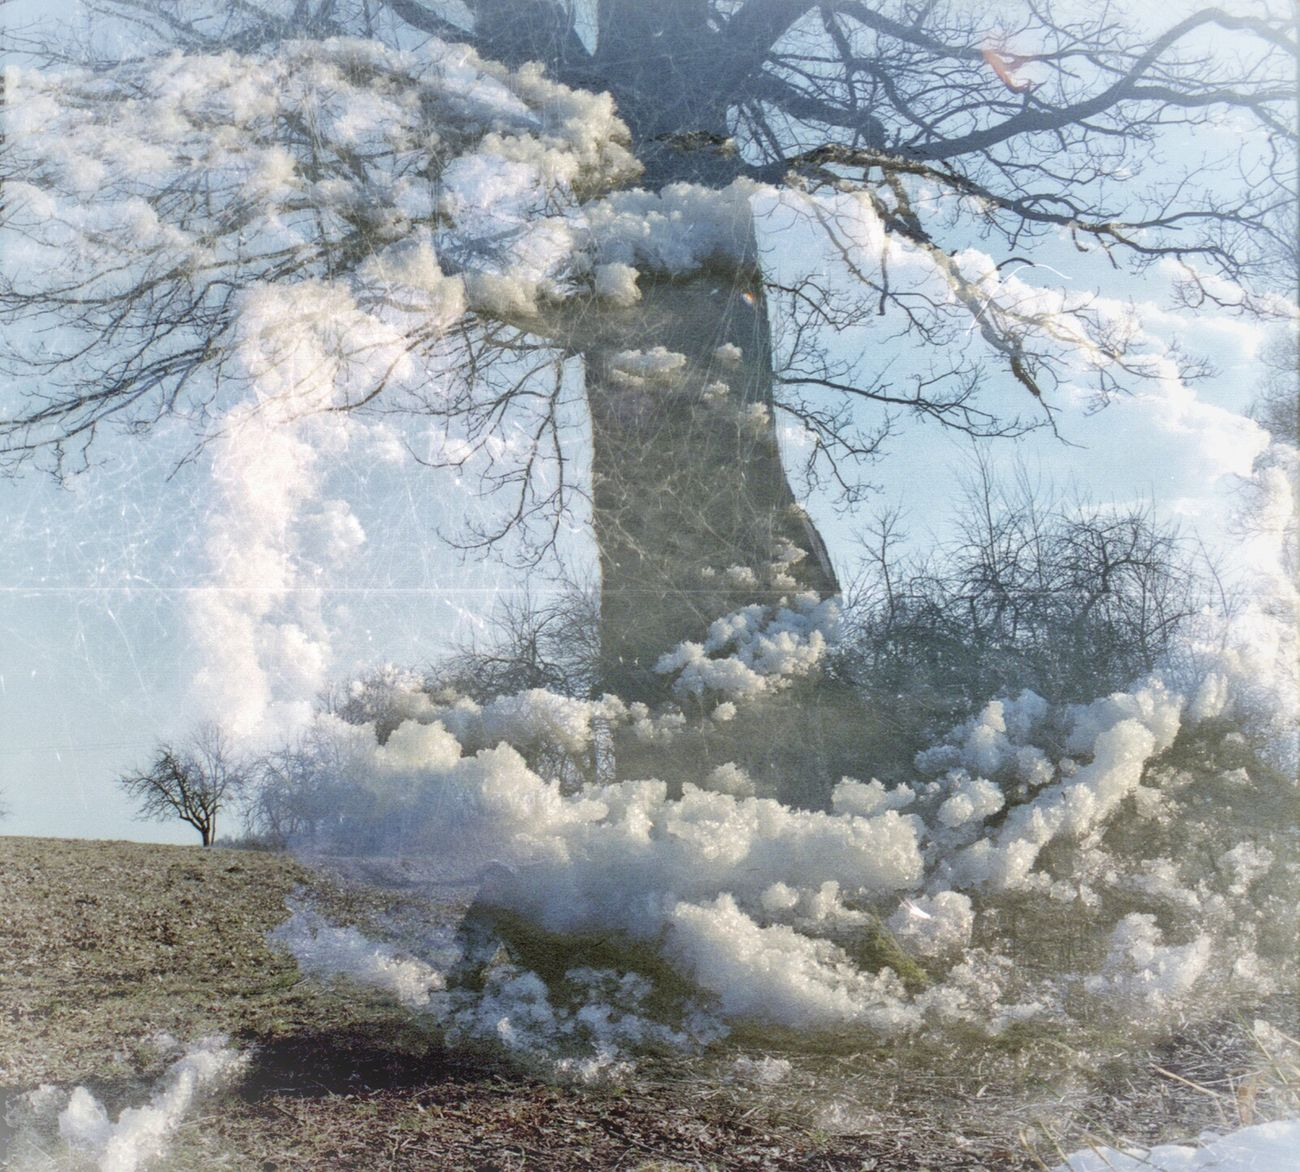 FilmSwap: My Tree in the Clouds (film swap with Gintarė Vilcinytė) Film Swap Analogue Photography Double Exposure Nature Tree Clouds Lithuania Multiexposure  Surreal